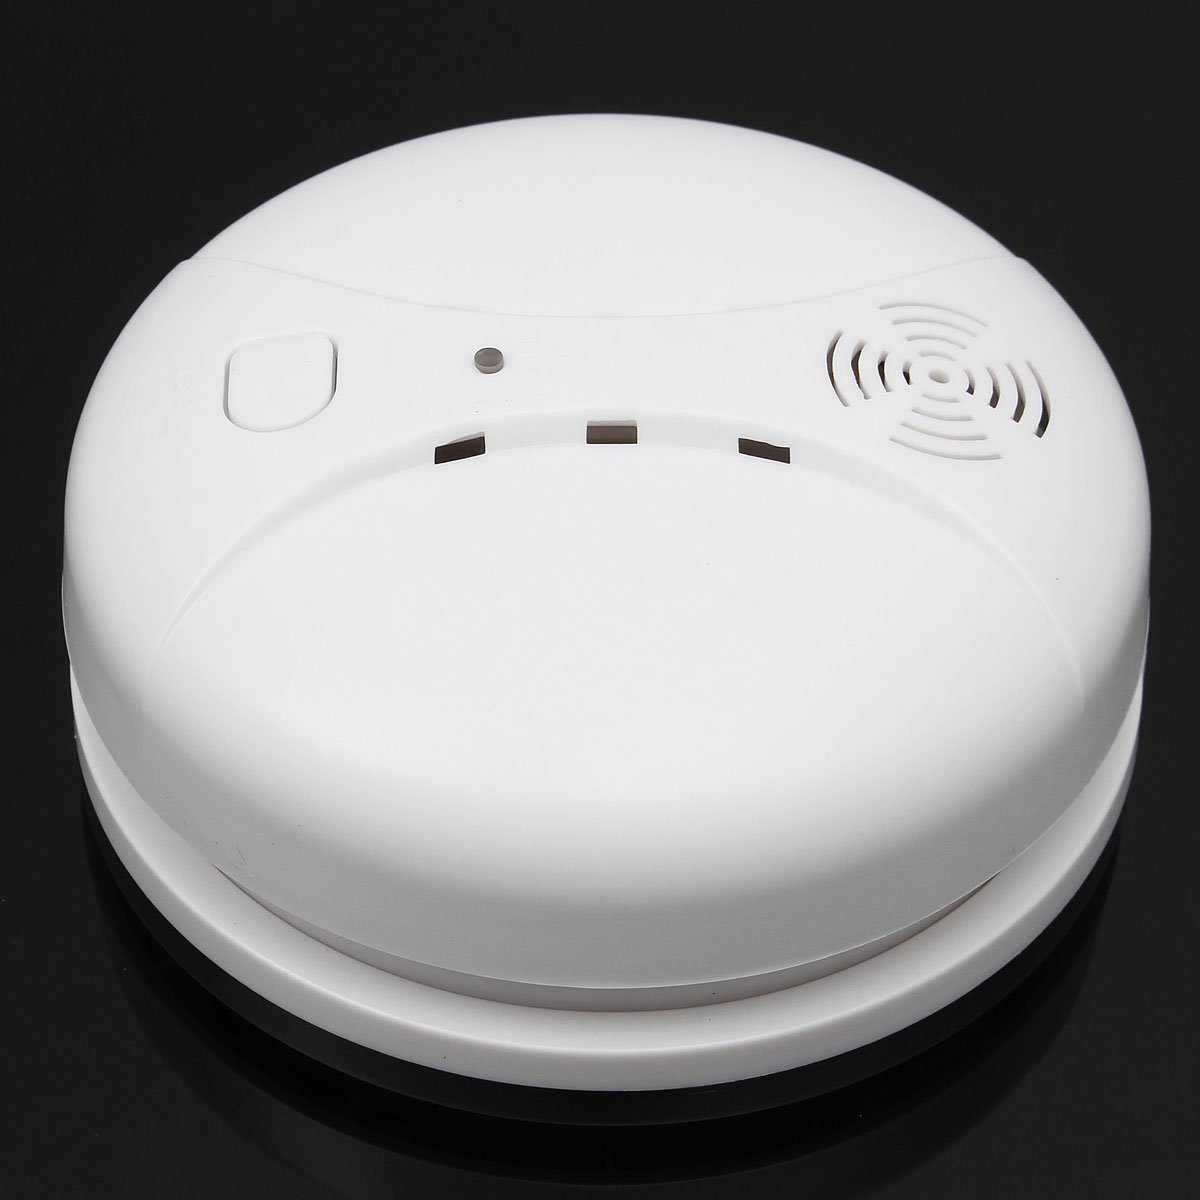 smoke detector Kidde smoke alarms (smoke alarm also called fire alarm) save lives, prevent  injuries and minimize damage by alerting you to a fire as early as smoke is  sensed.